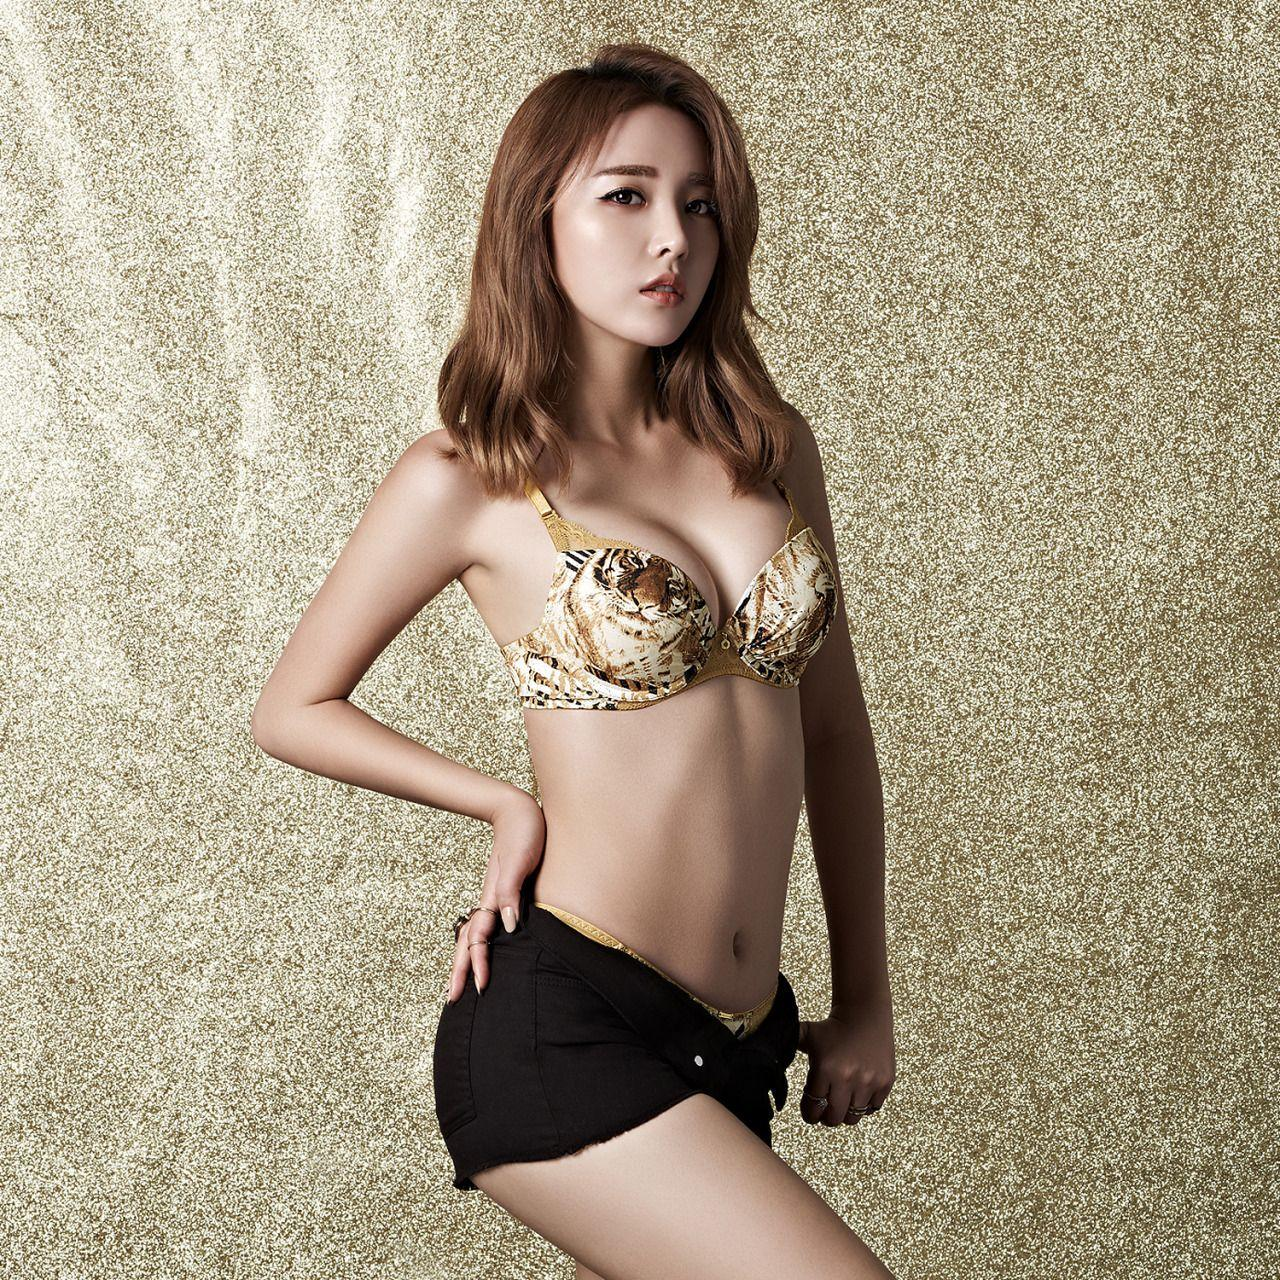 Hong Jin-young